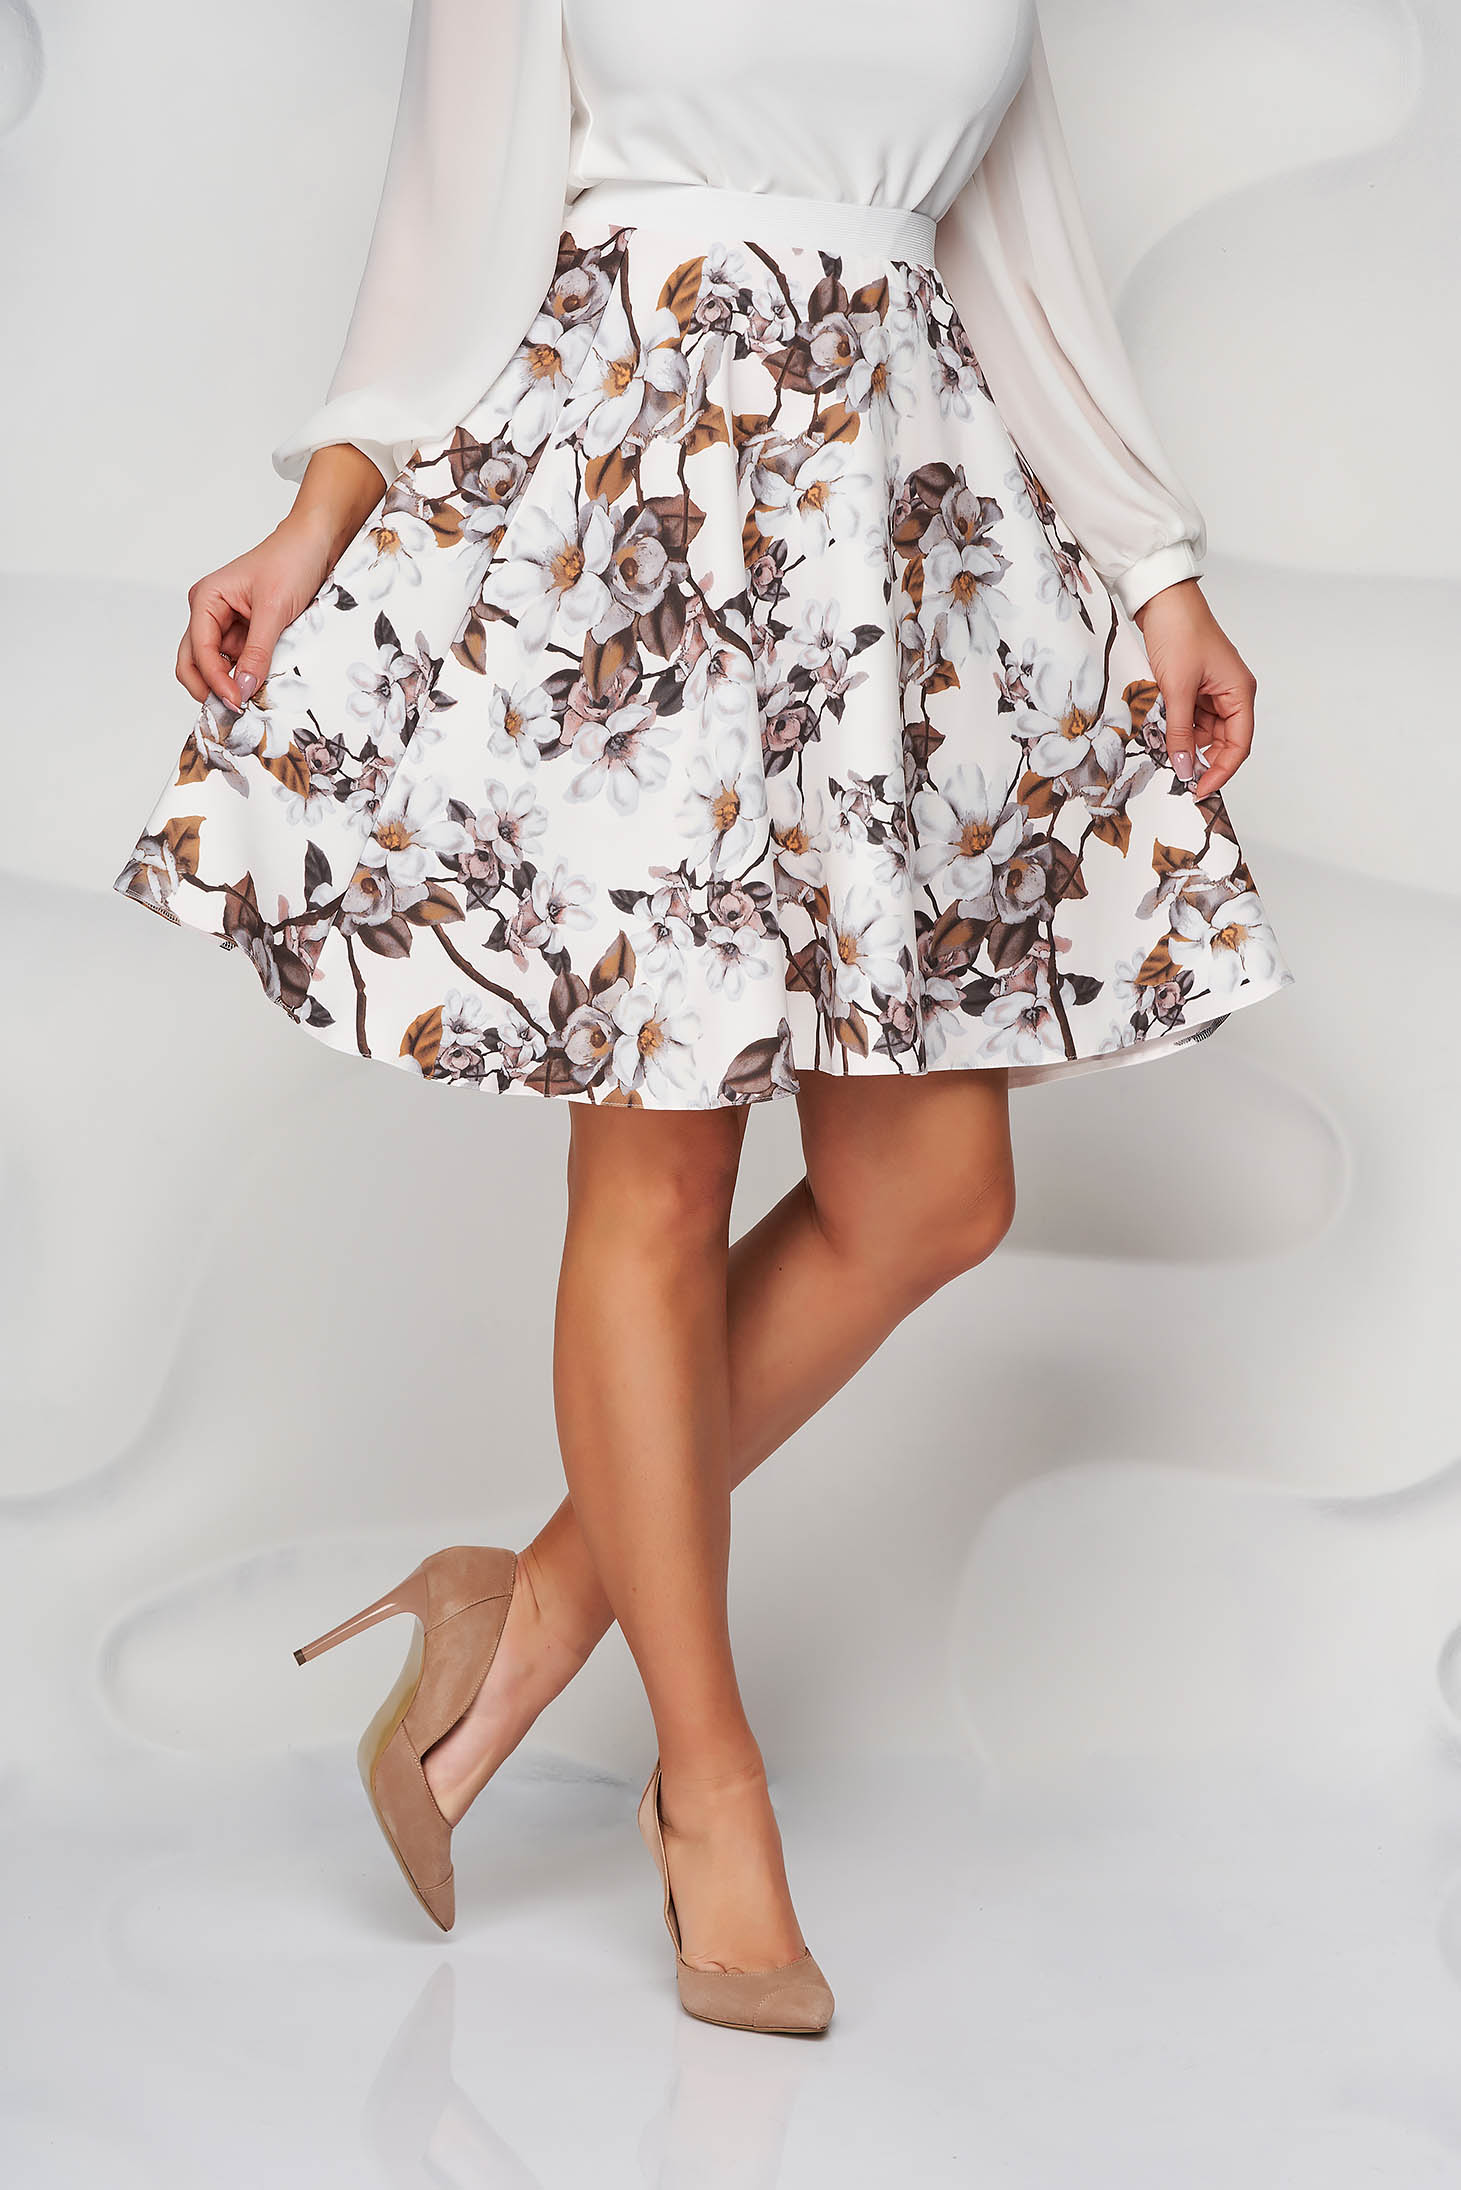 StarShinerS cappuccino skirt cloche with elastic waist